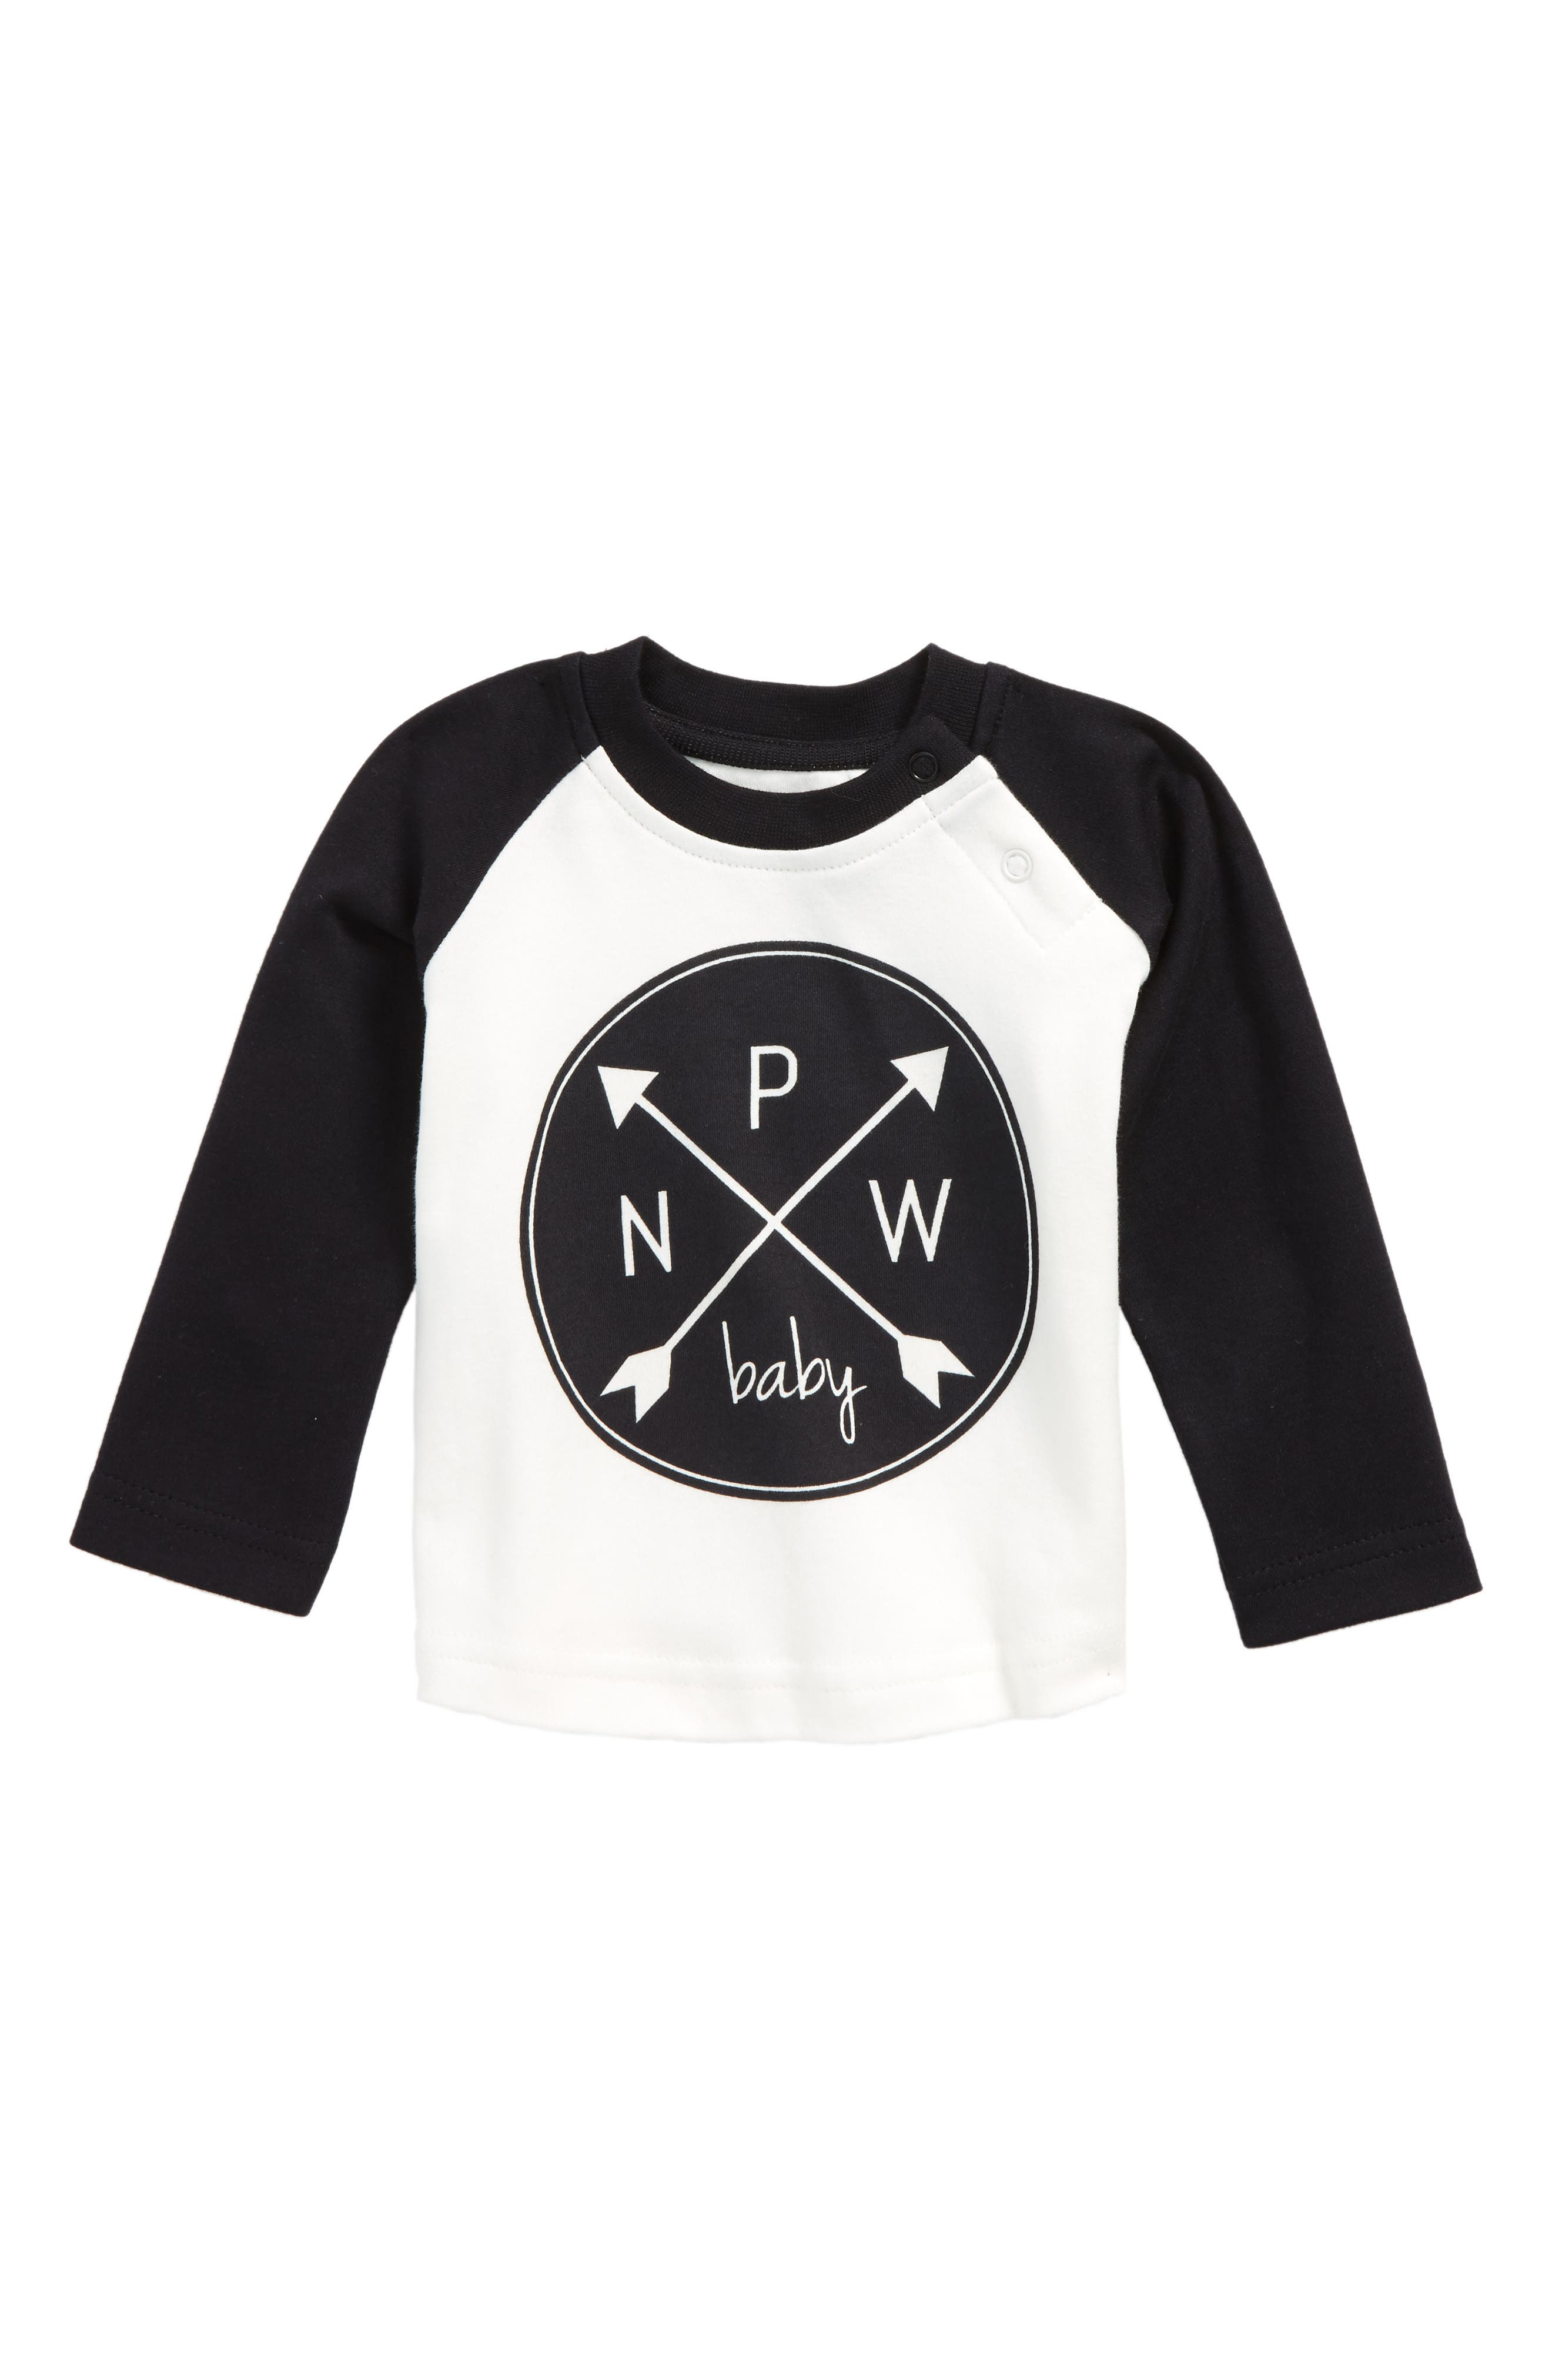 PNW Logo Organic Cotton T-Shirt,                             Main thumbnail 1, color,                             Black/ Offwhite